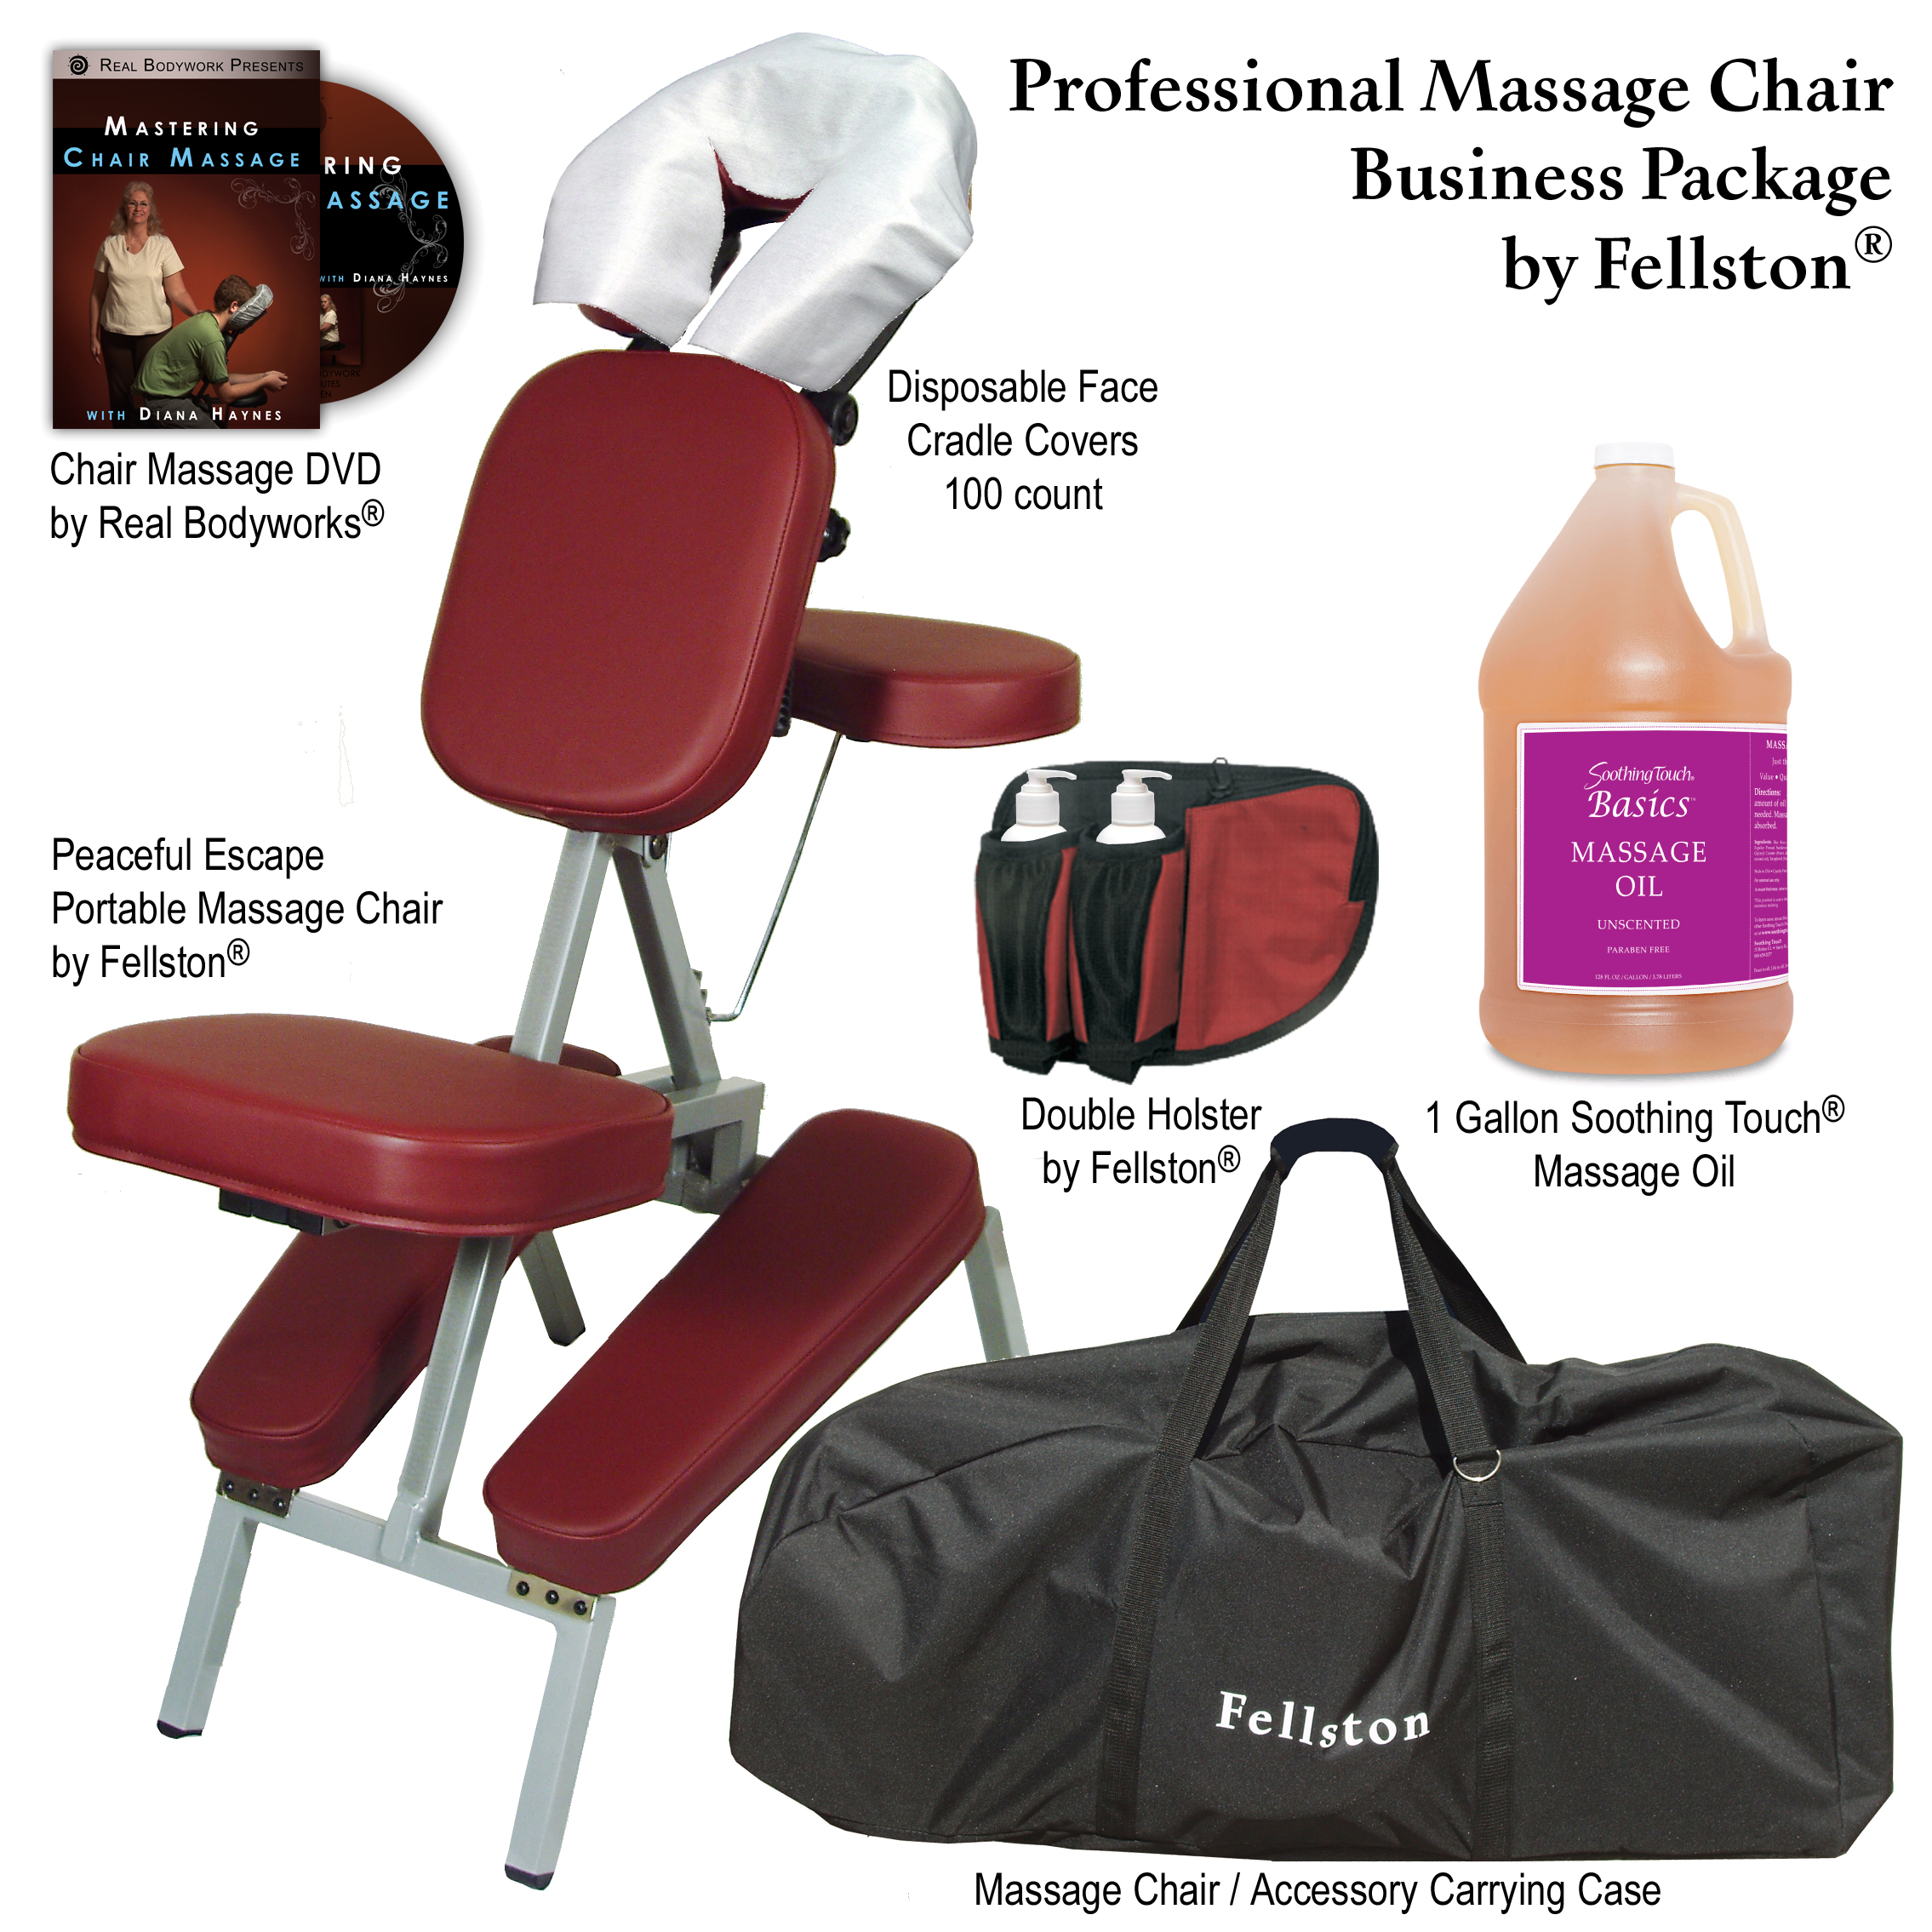 professional massage chair kohls rocking cushions business package  products